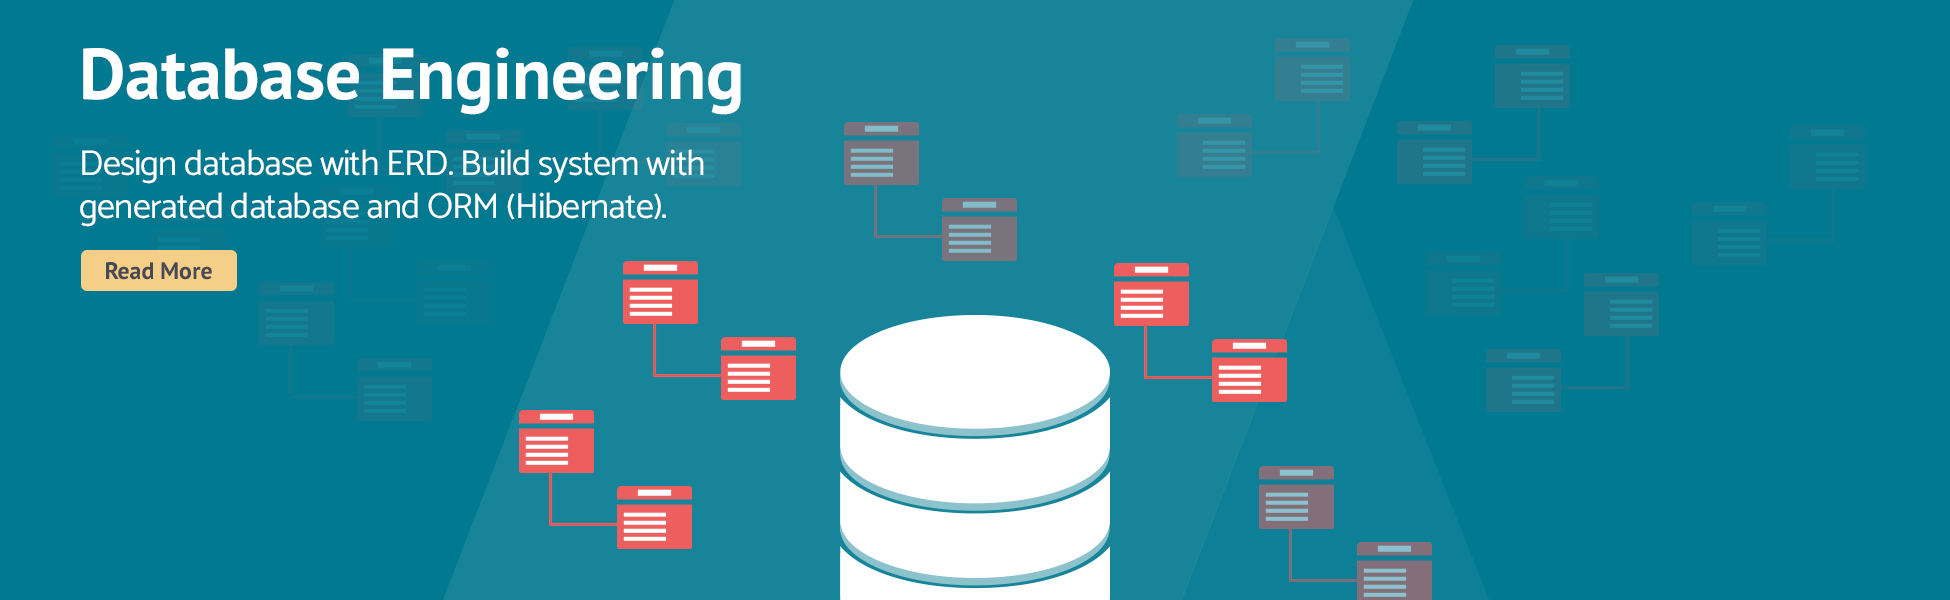 Database Engineering